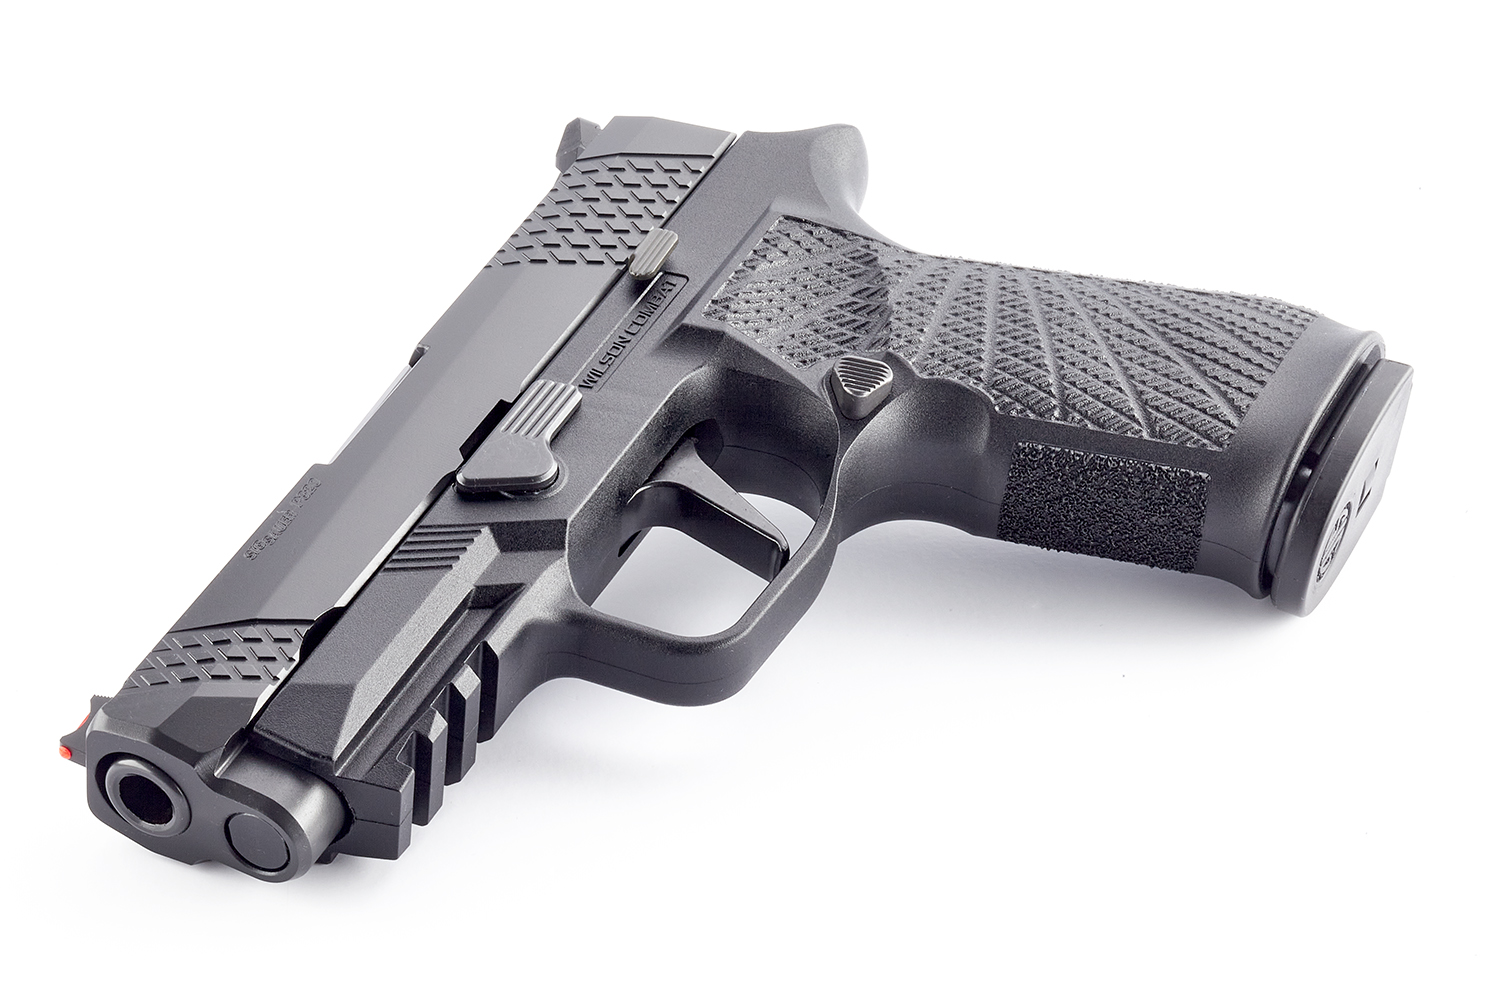 WCP320 CARRY Pistol by Wilson Combat and SIG Sauer (6)